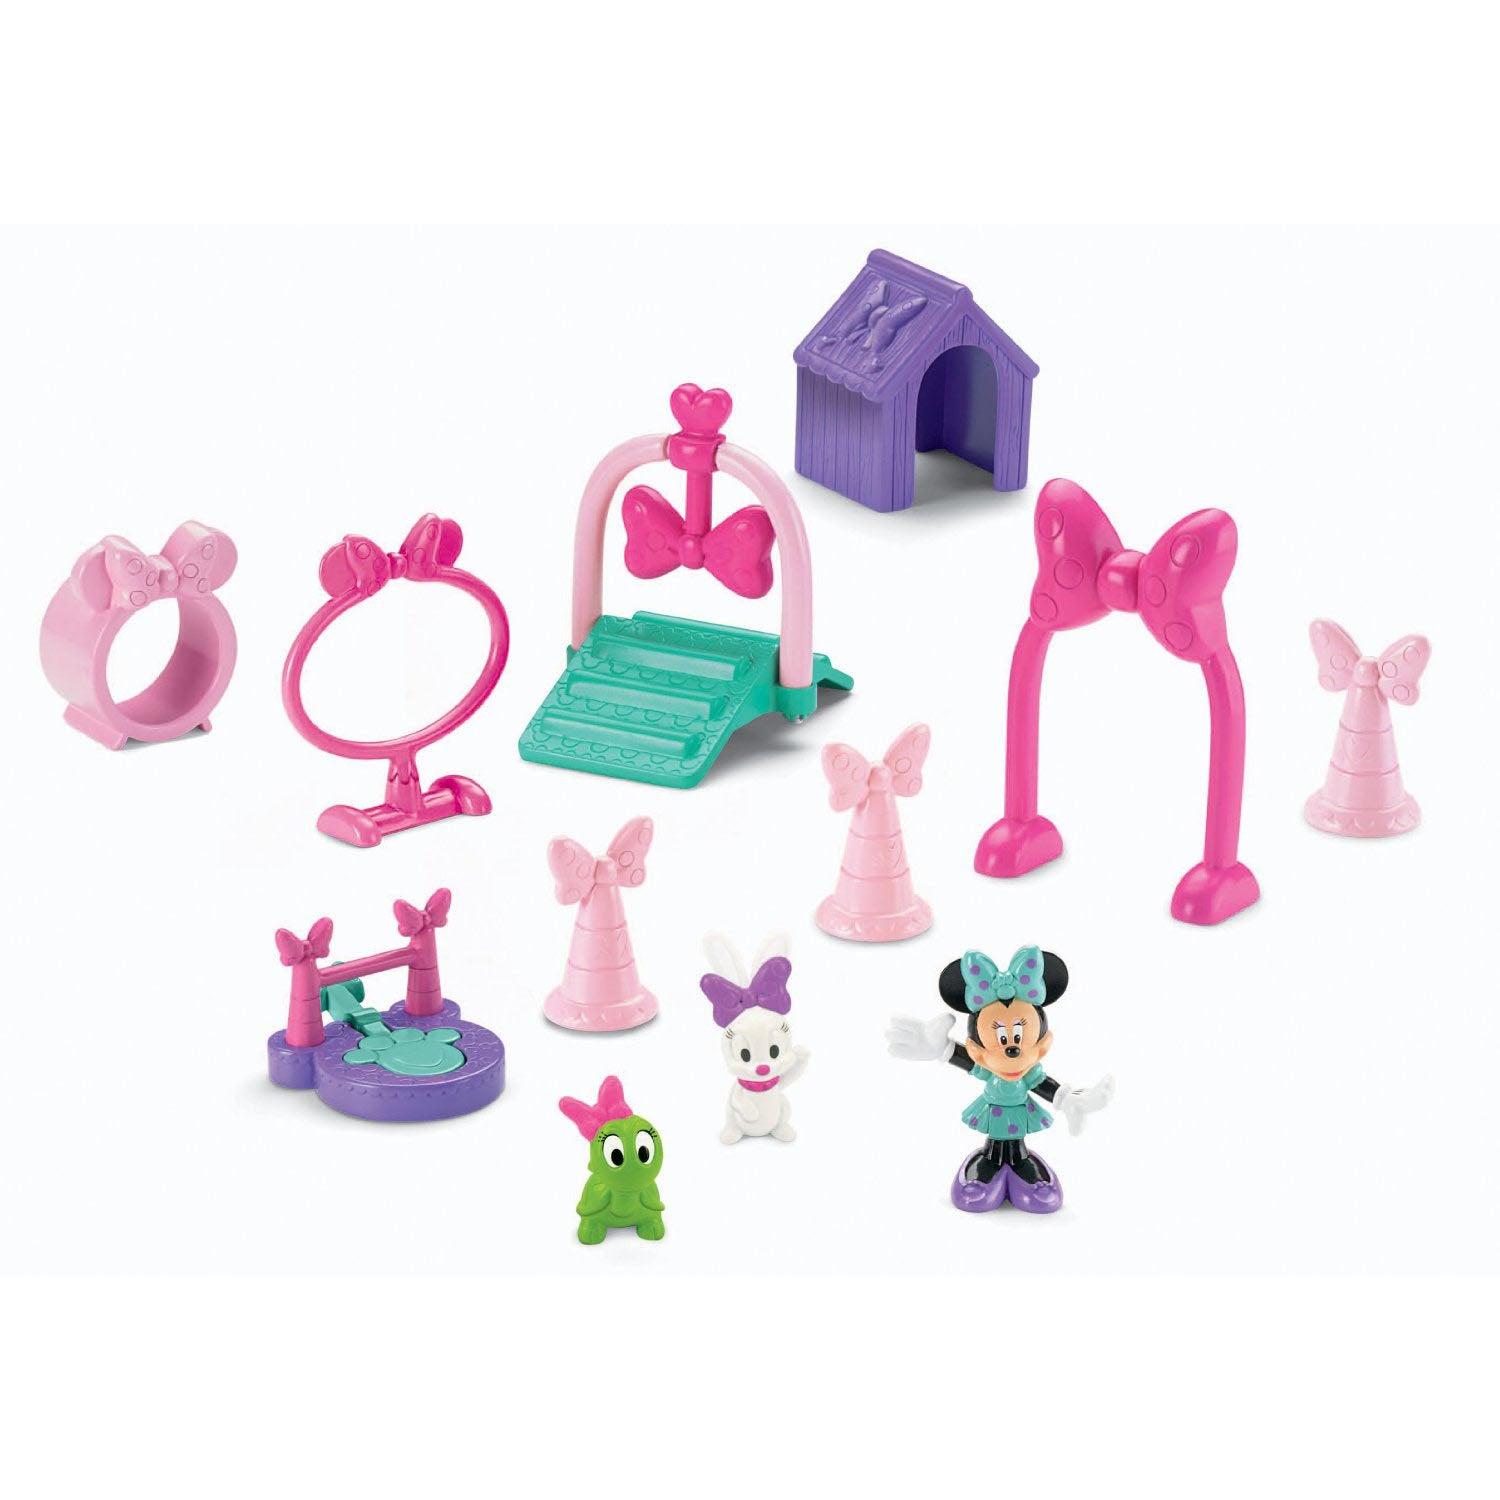 Minnie Mouse Toys - Minnie's Paw Pack